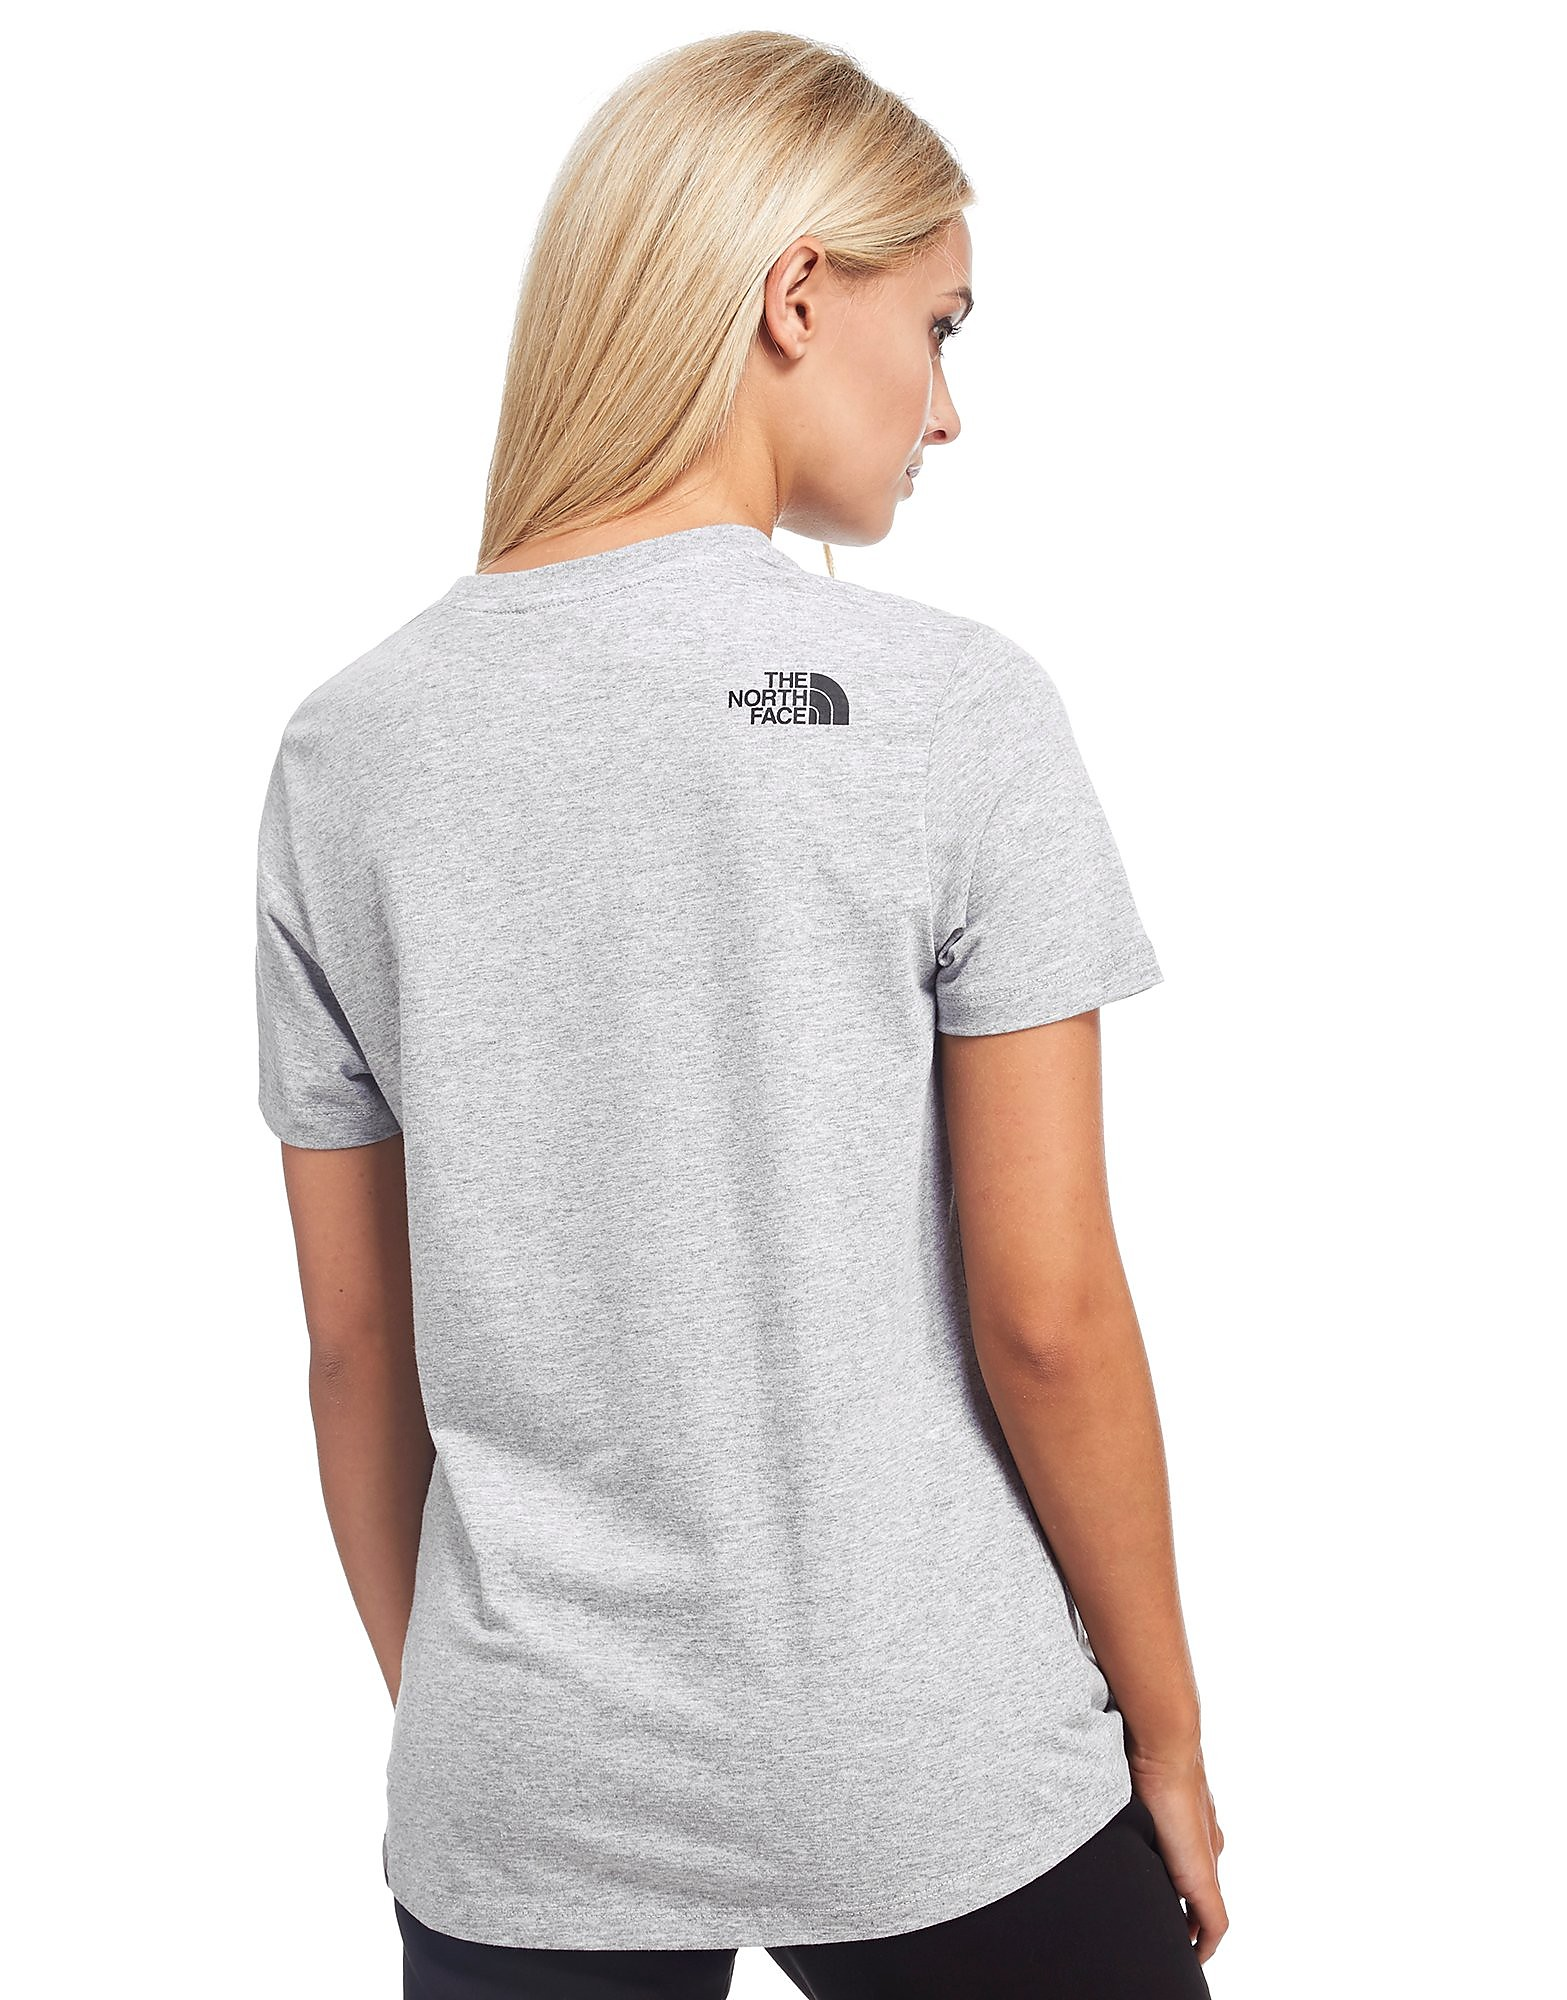 The North Face Boyfriend T-Shirt